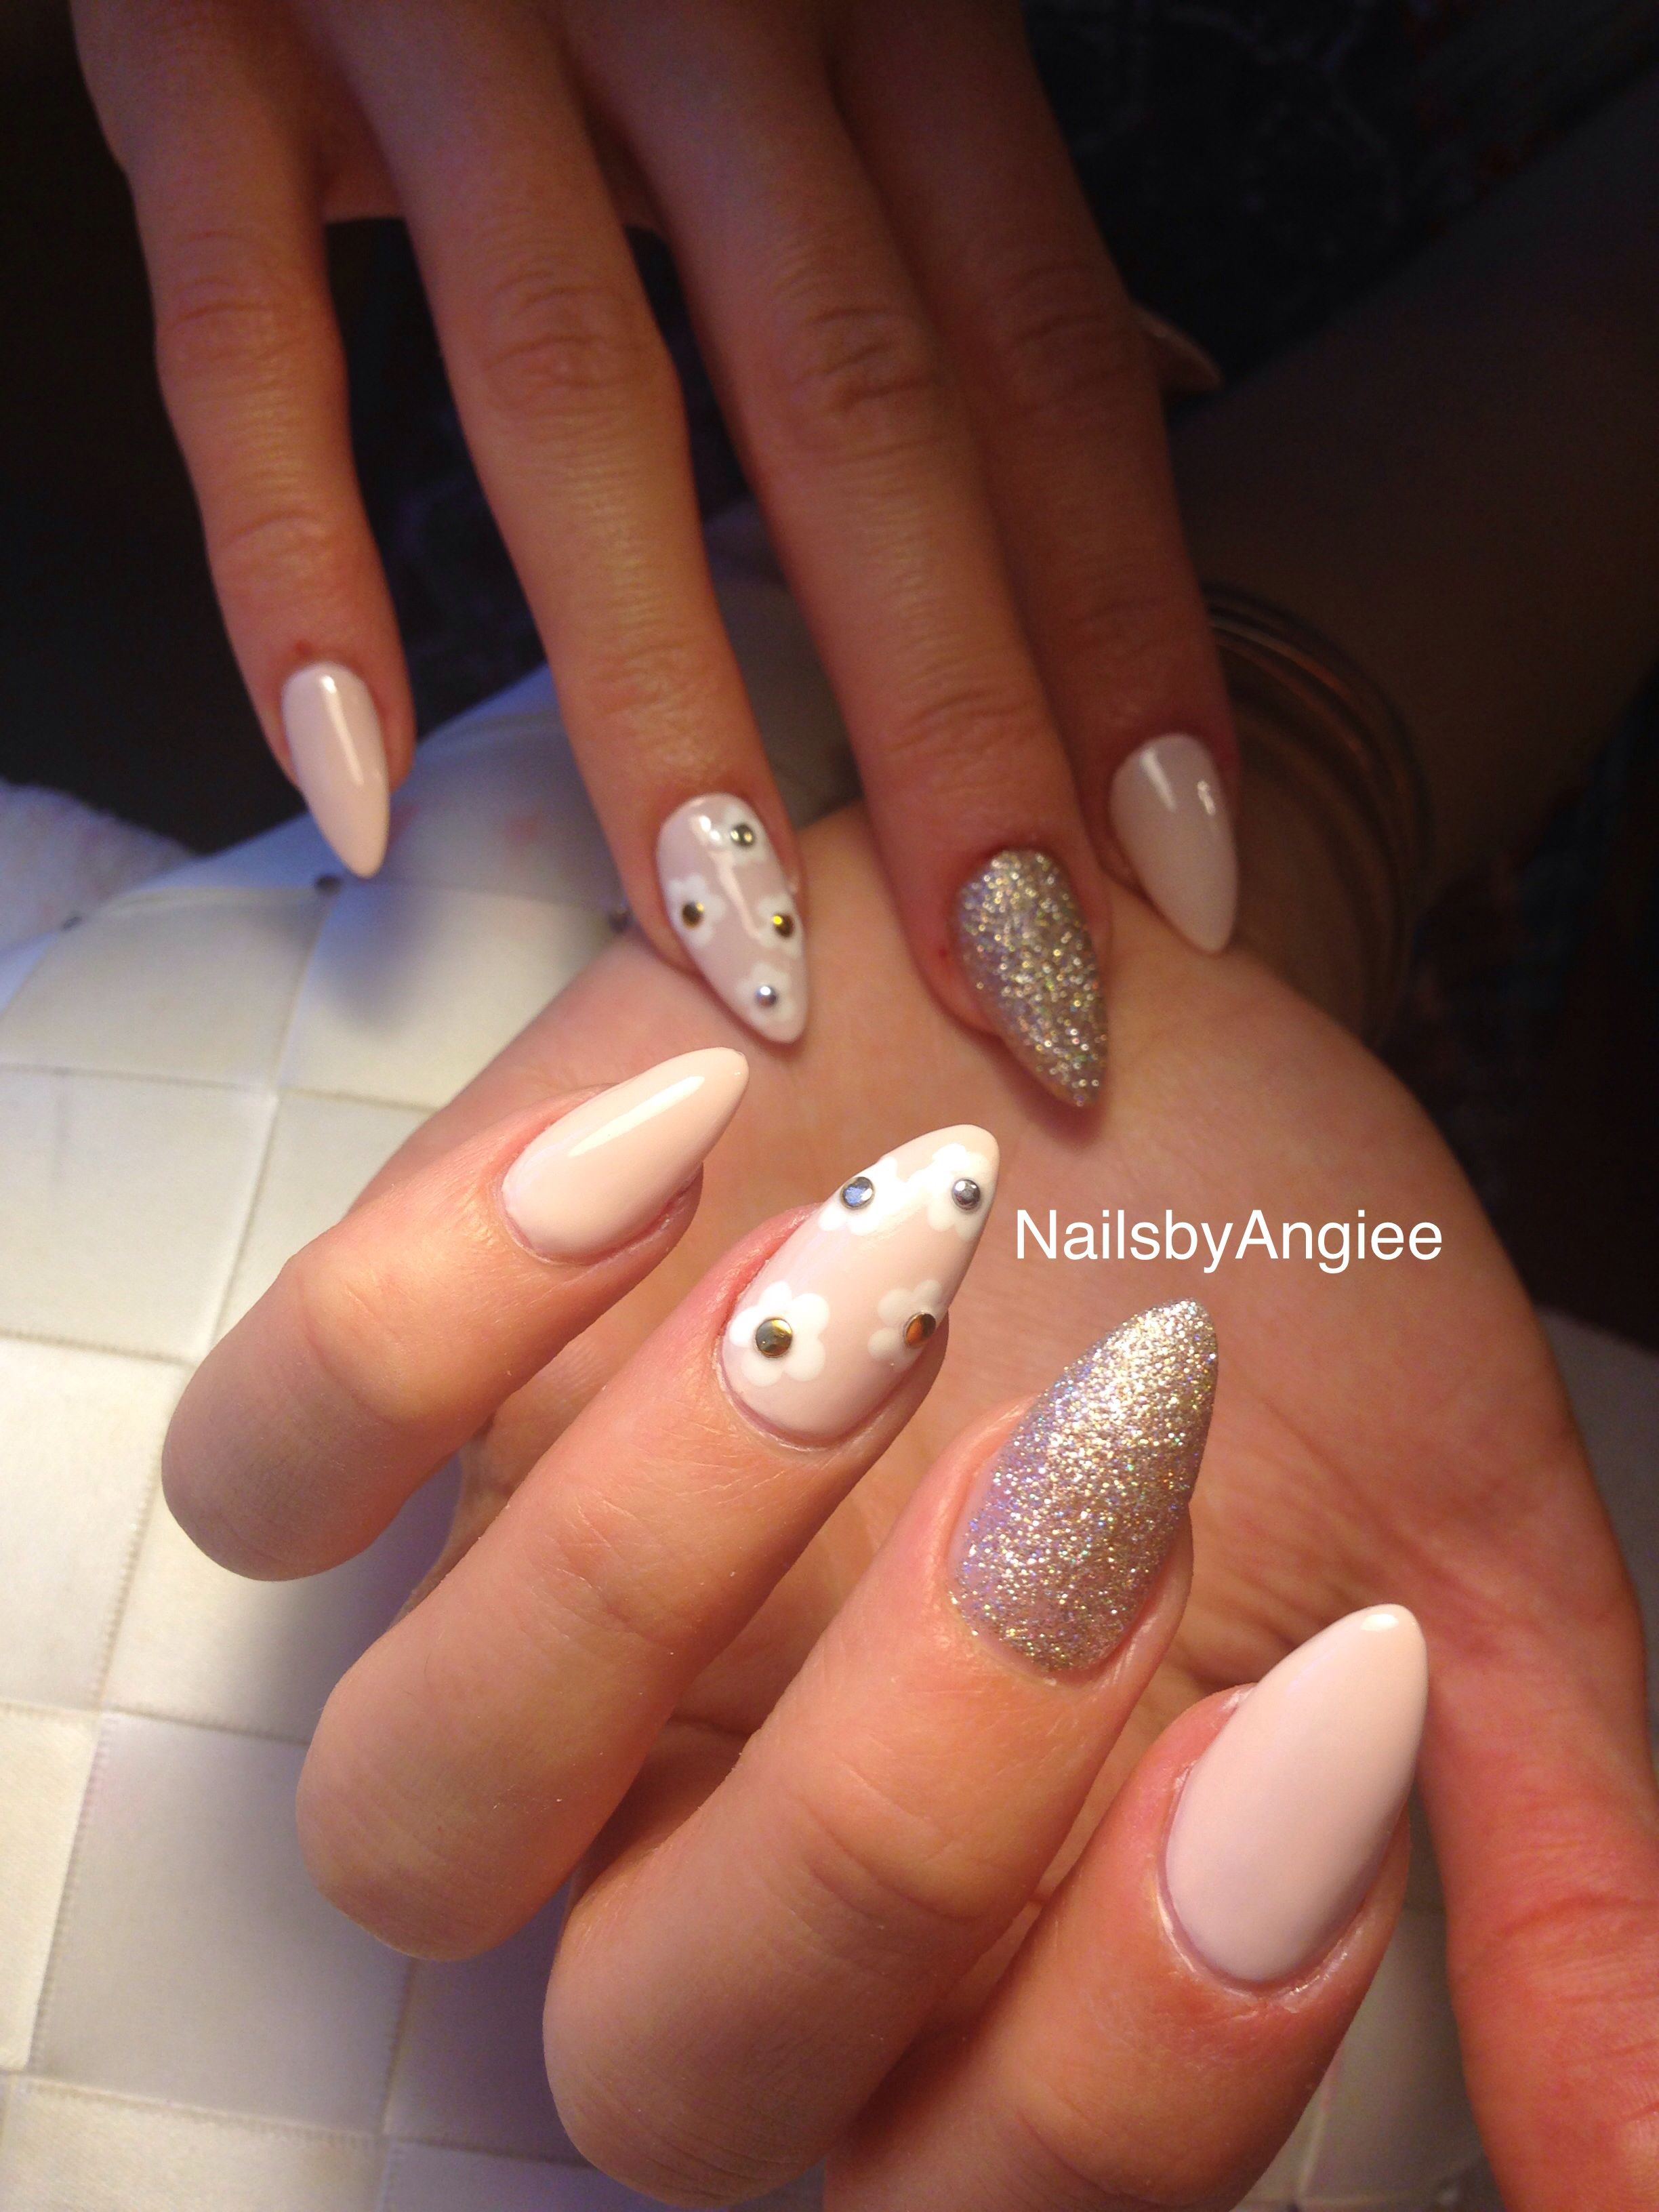 Full set acrylic with simple nail design | Nails | Pinterest ...